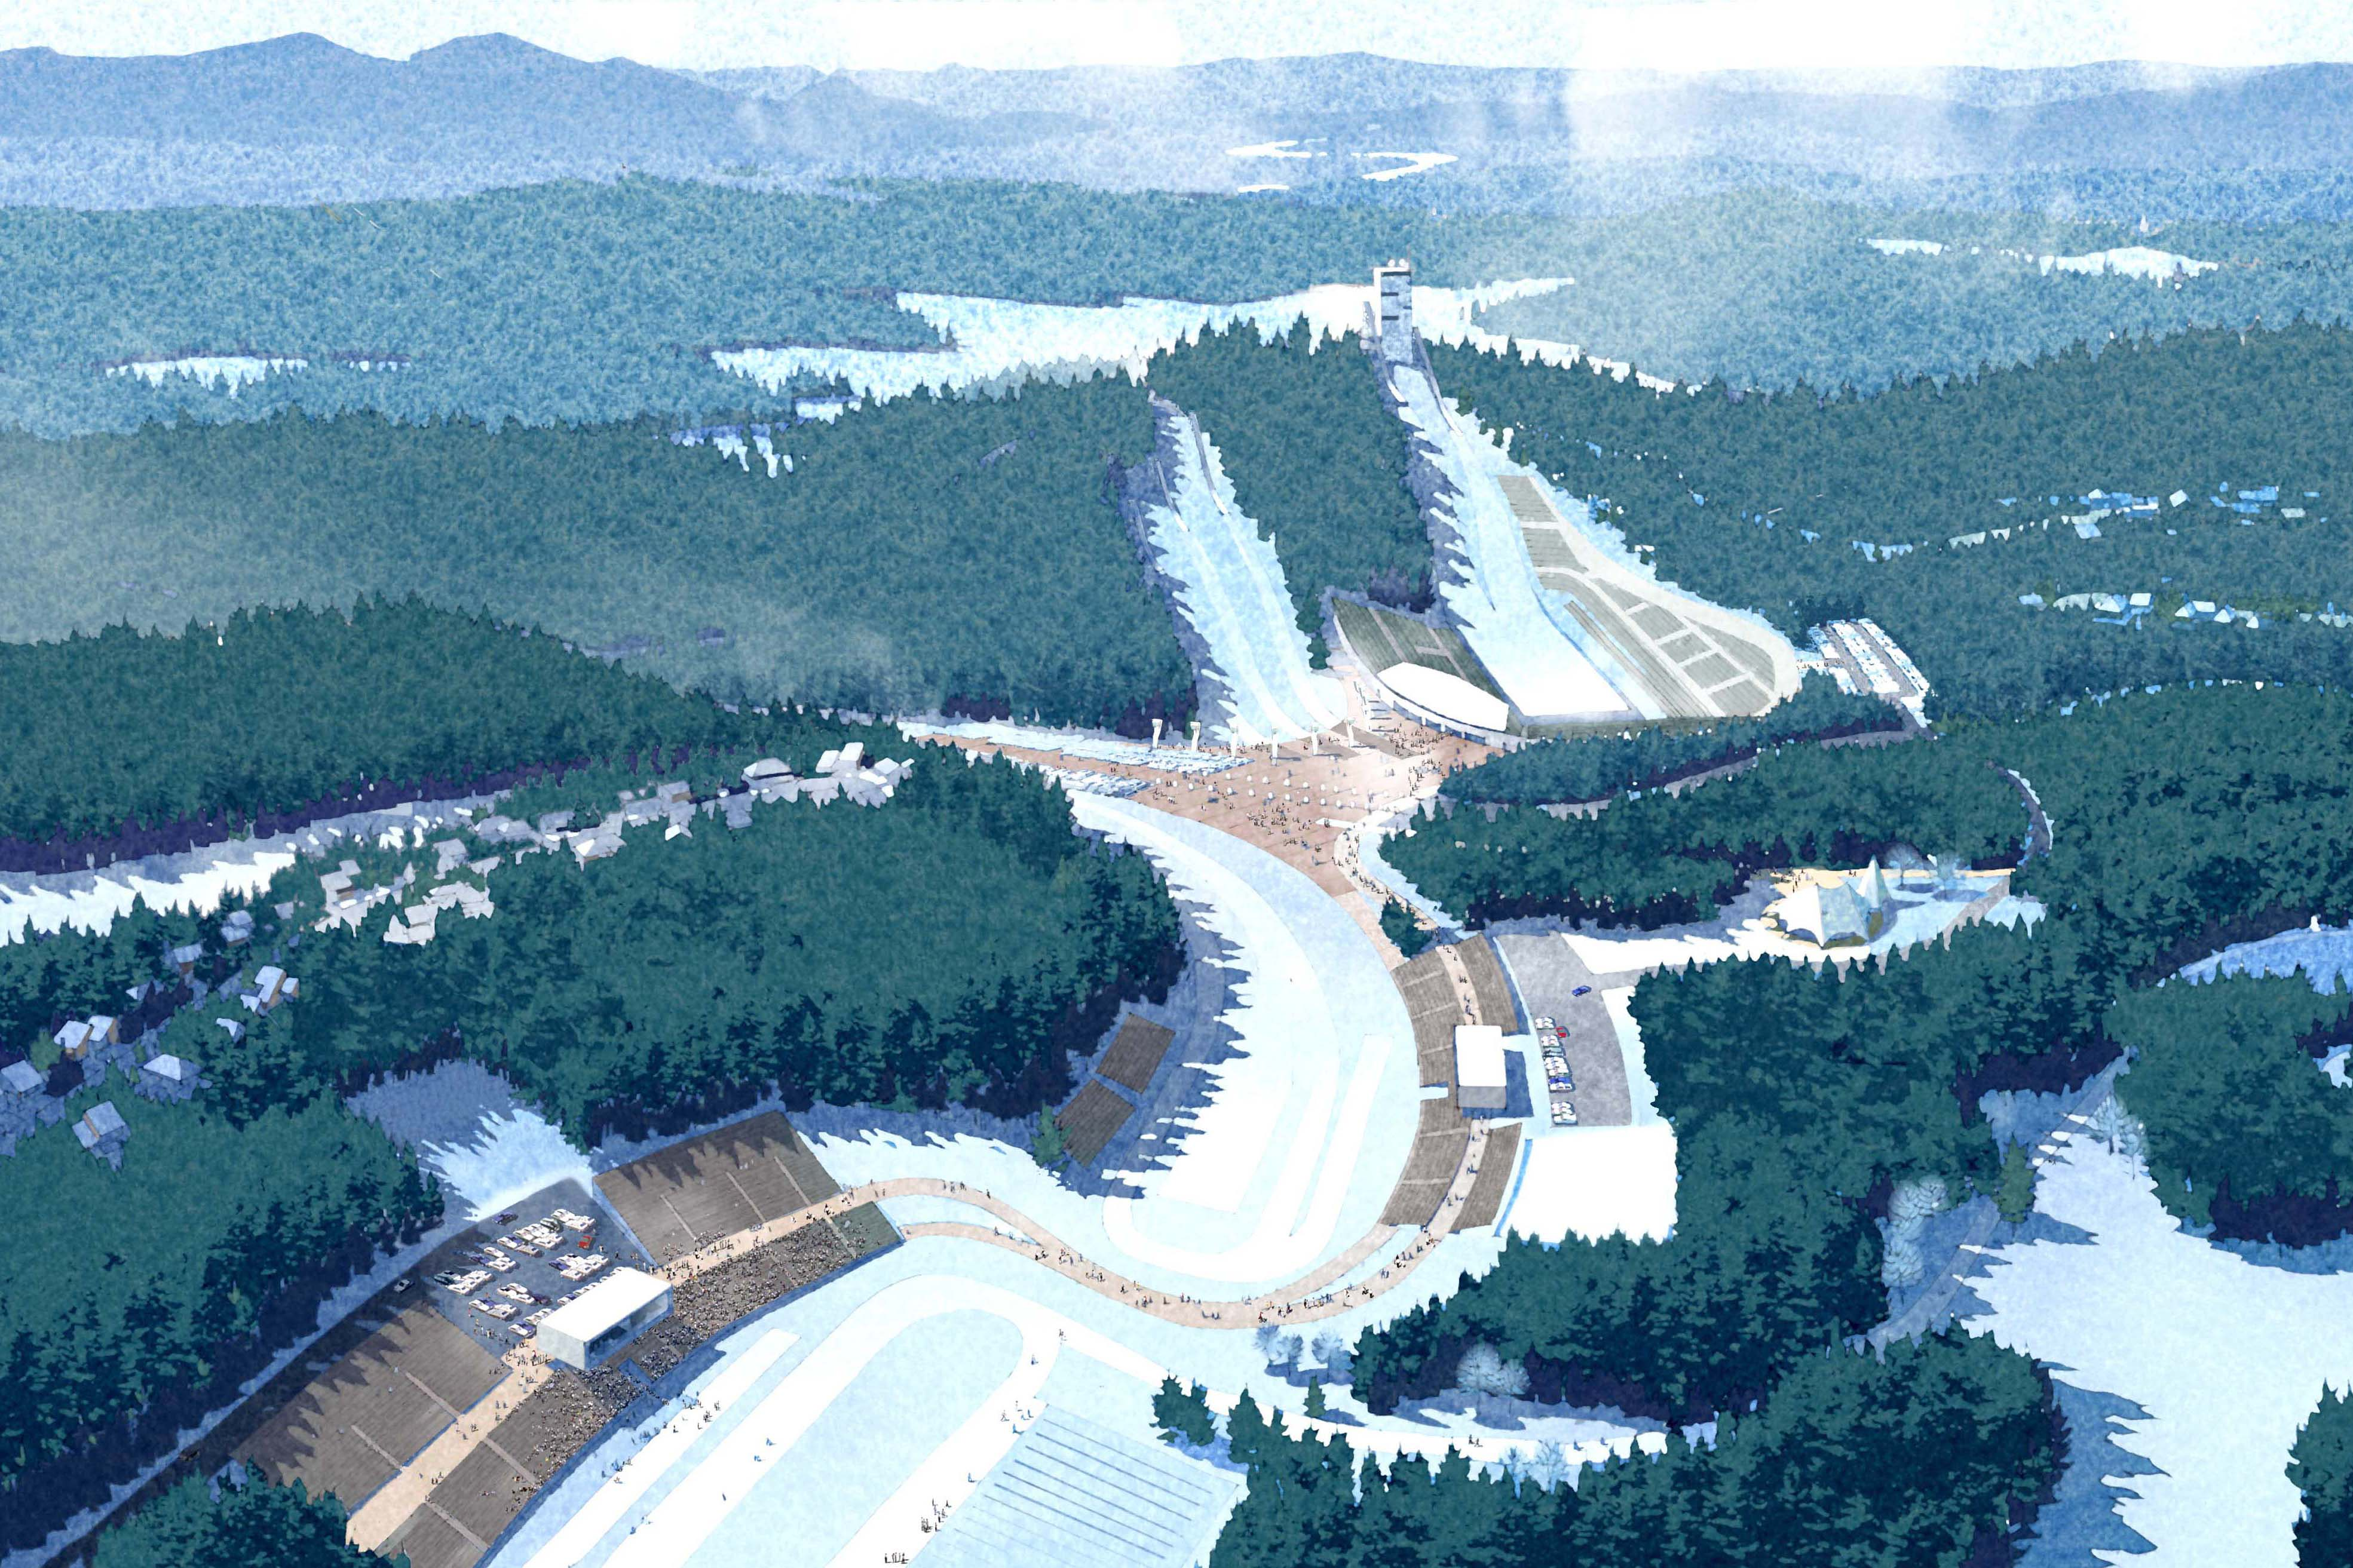 SWA Group's master plan for the 2018 Winter Olympics is a compact design accommodating more competitions in closer configuration for easier access of spectators. Image courtesy SWA Group.